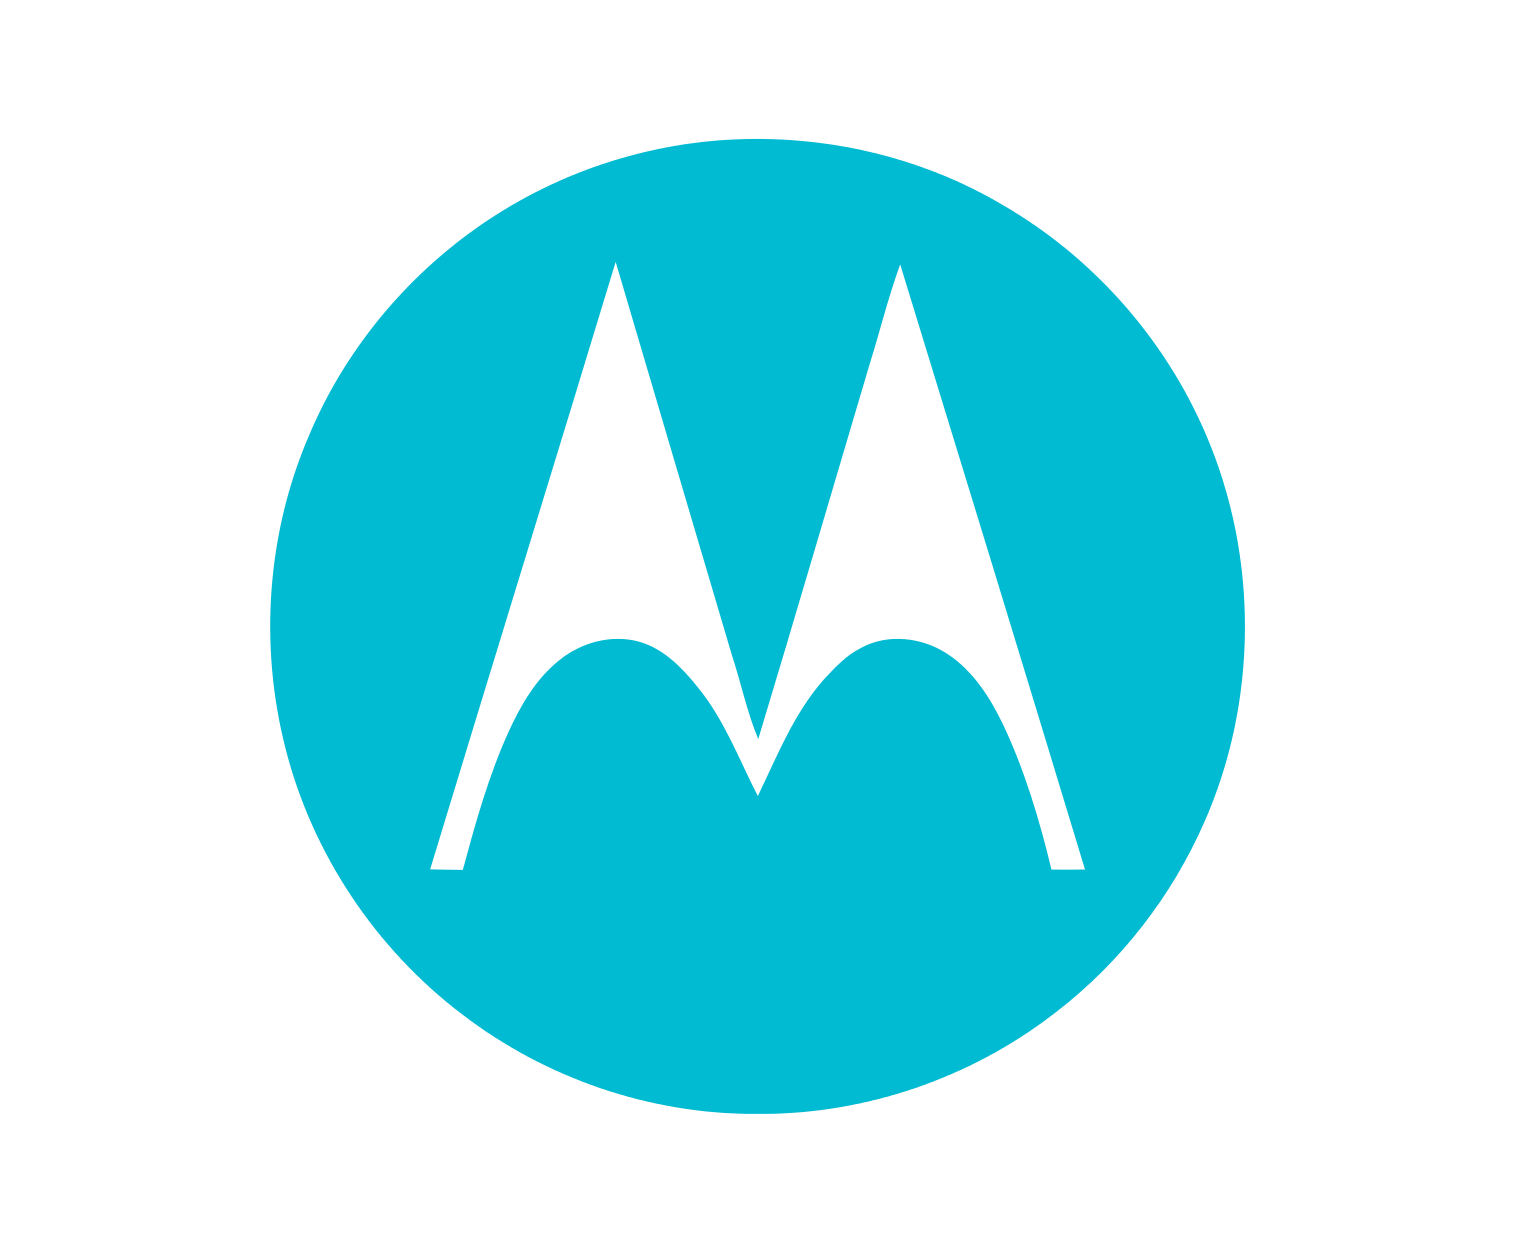 Motorola-logo-1-1 - Ace Commu